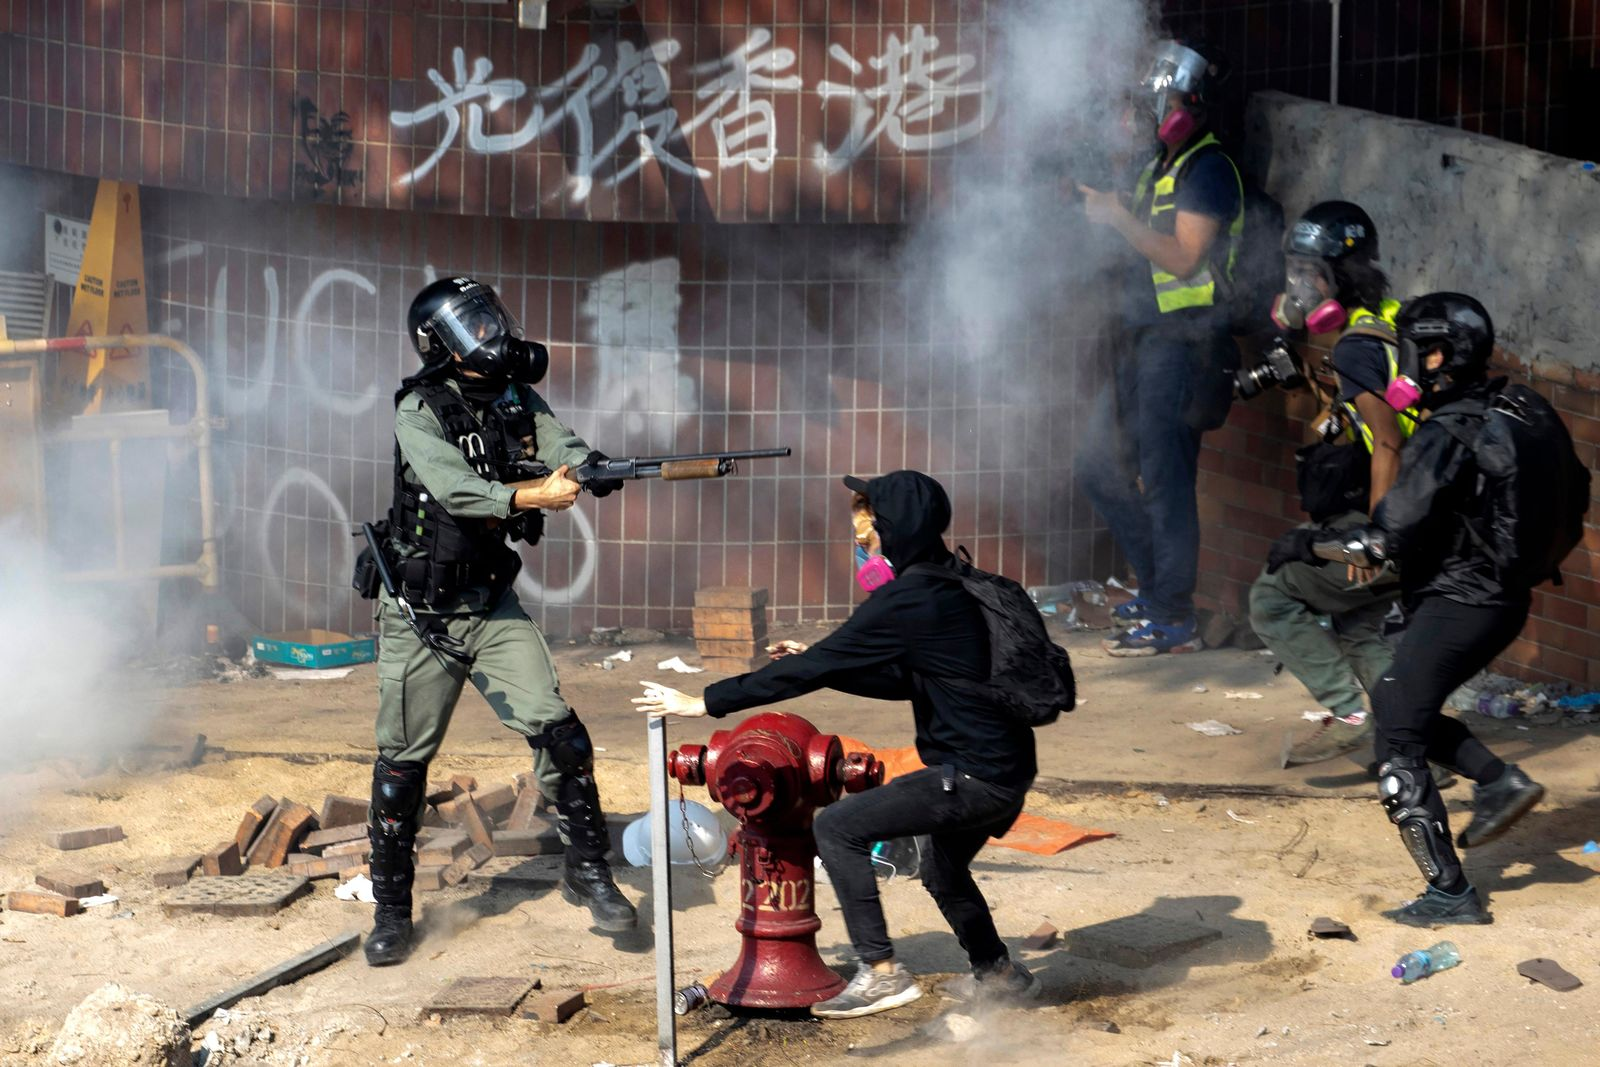 A policeman in riot gear points his weapon as protesters try to flee from the Hong Kong Polytechnic University in Hong Kong, Monday, Nov. 18, 2019.{ } (AP Photo/Ng Han Guan)